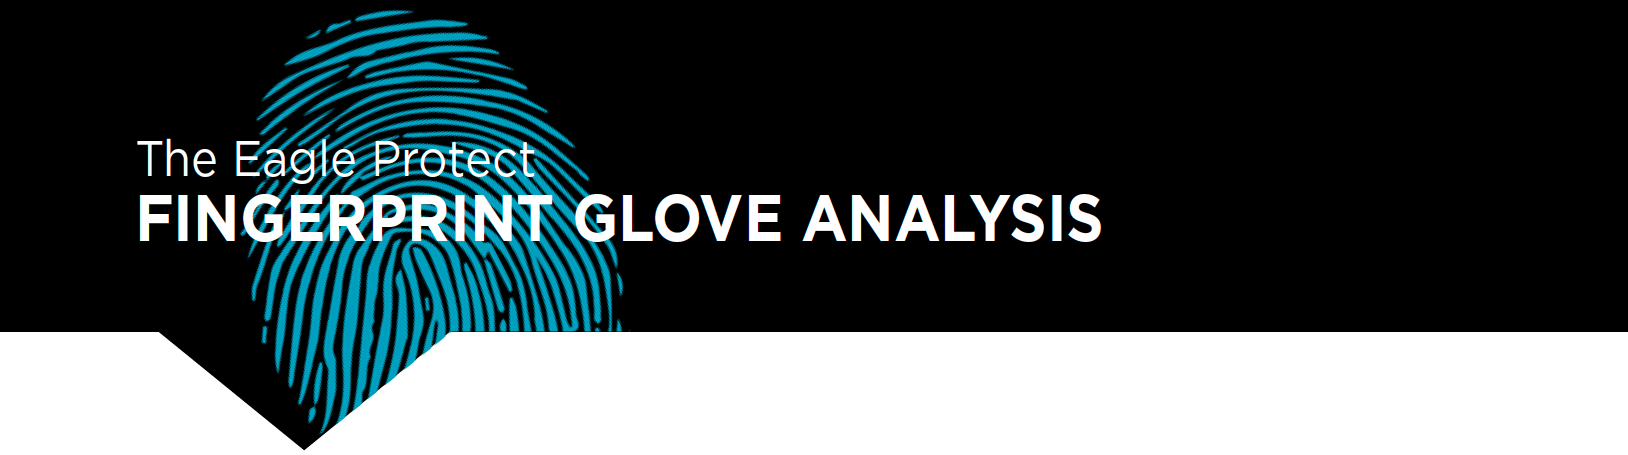 Fingerprint Glove Analysis Check Summary